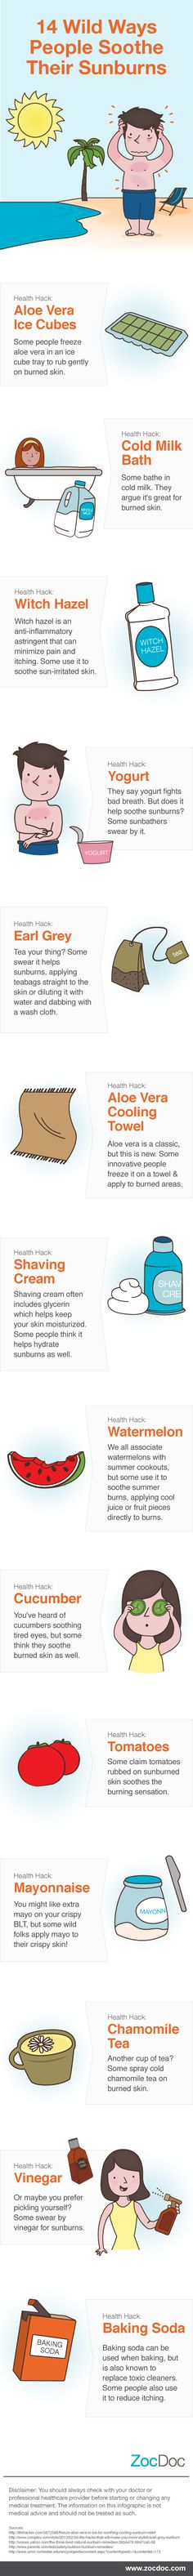 14 Wild Ways People Soothe Their Sunburns [INFOGRAPHIC]